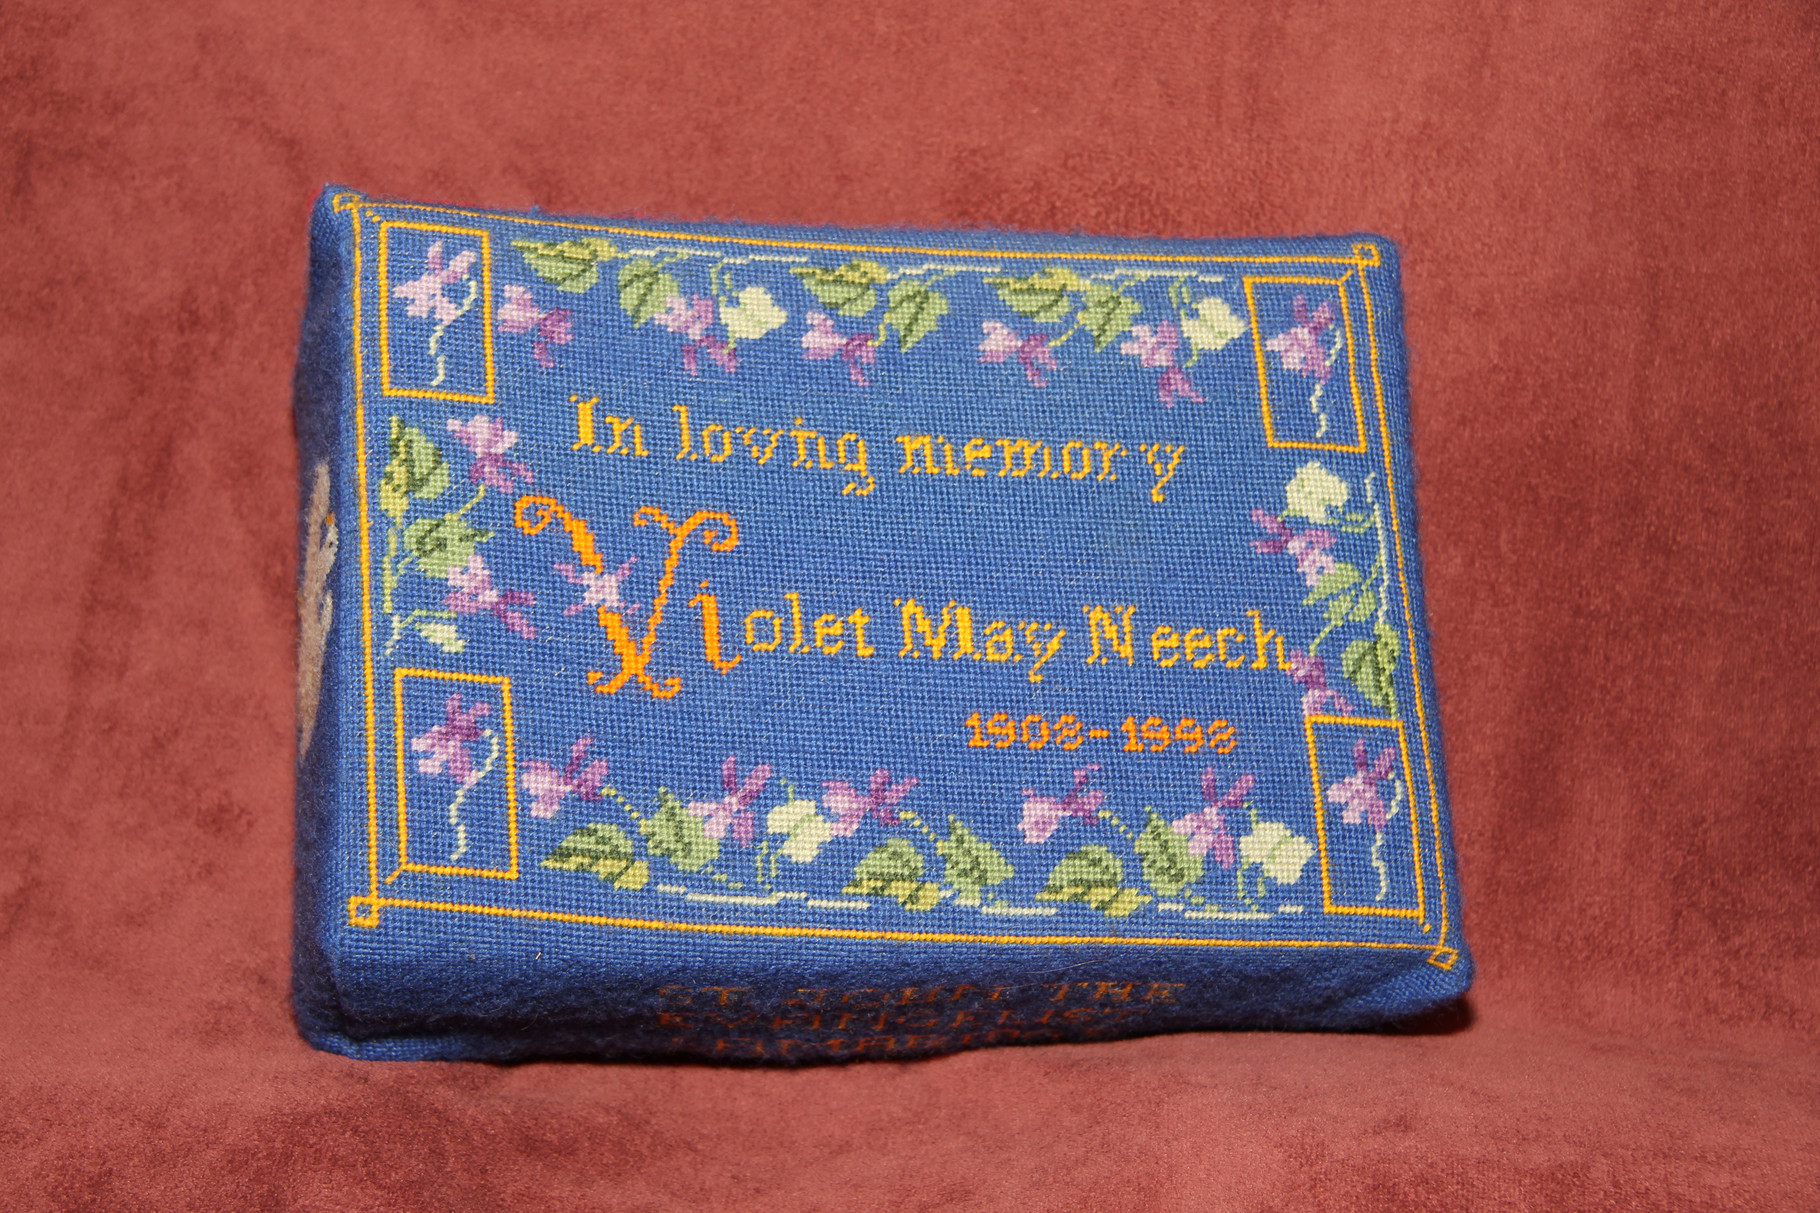 47. Flower Borders in memory of Violet May Neech  (1908-1998) donated by Eddie Neech and worked by Carol Hatfield